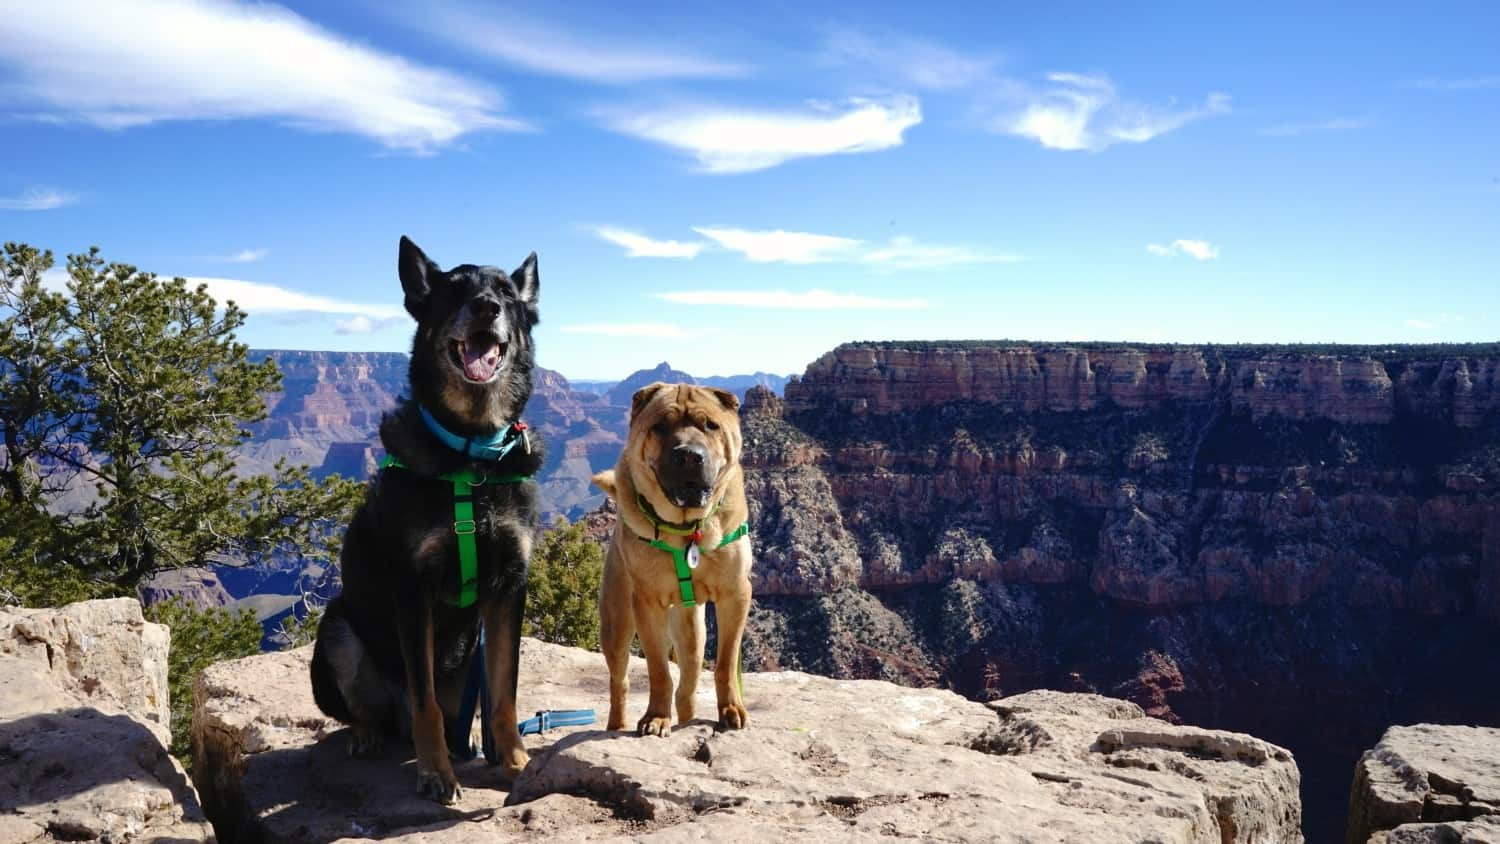 Dogs posing for picture on the South Rim Trail at Grand Canyon National Park, Arizona